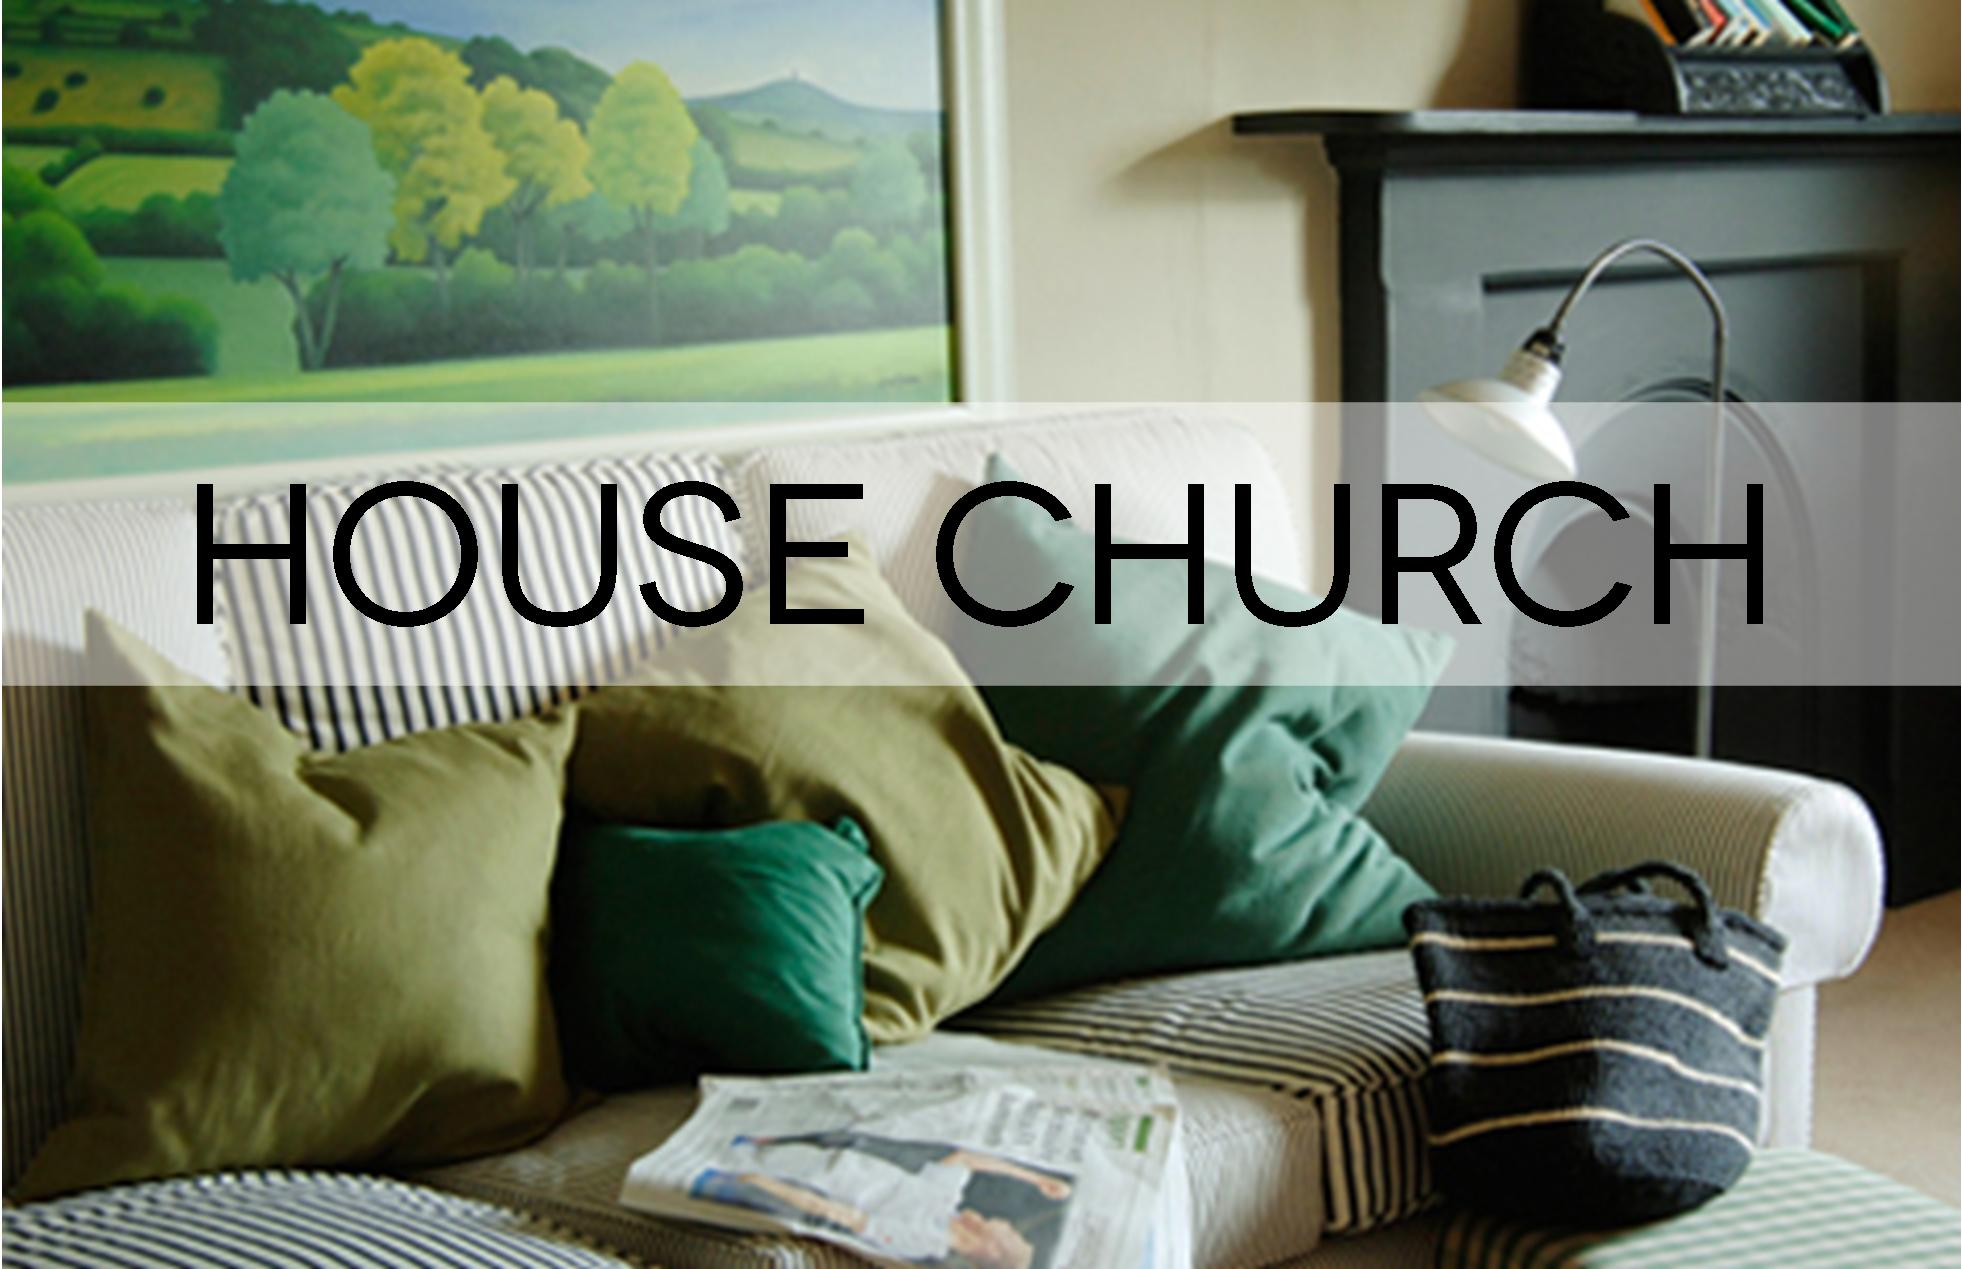 House Church Feature Day